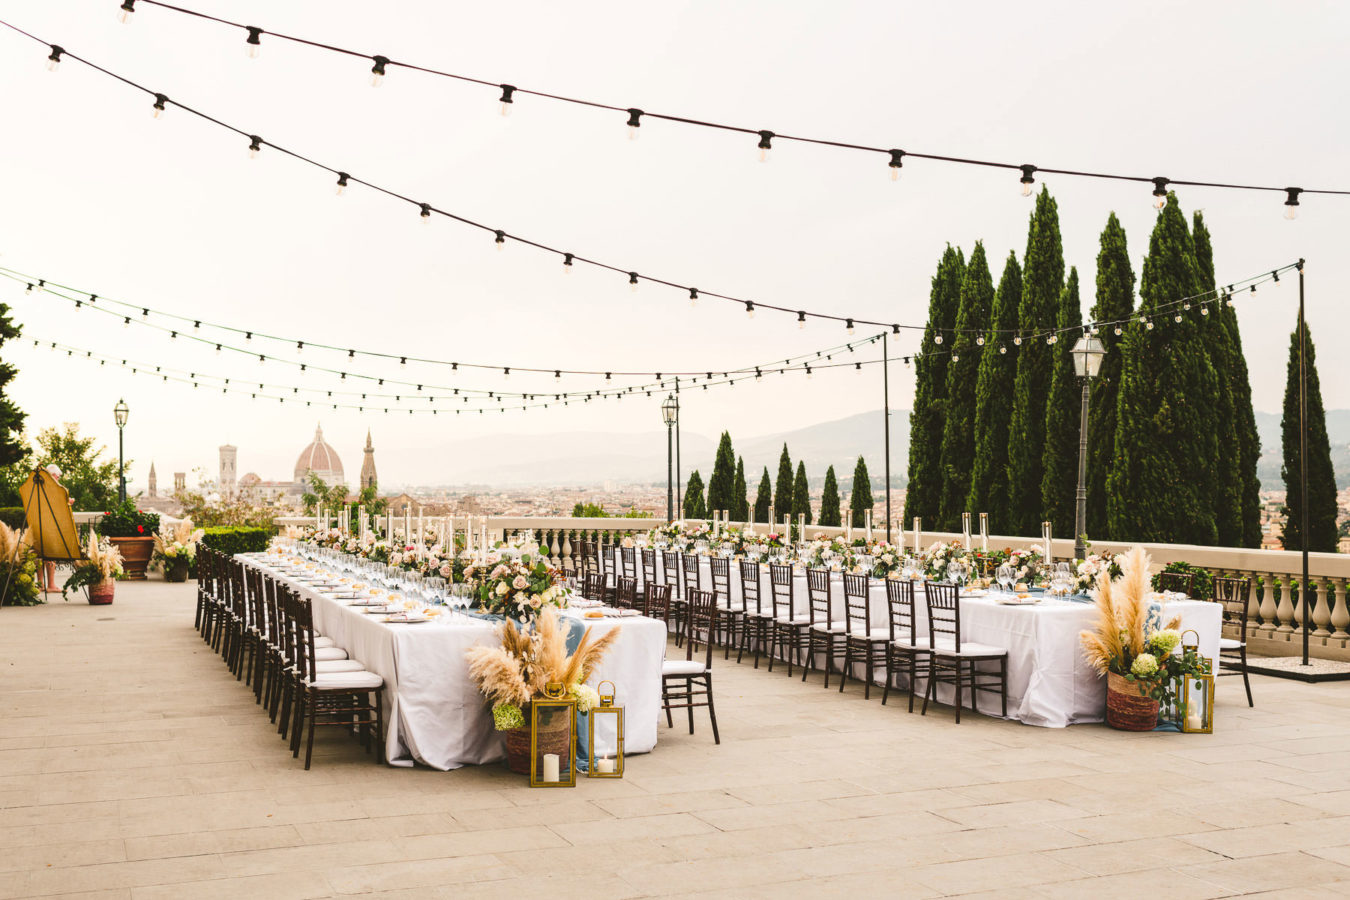 Luxury wedding with amazing view at Villa La Vedetta in Florence. Intimate luxury destination wedding dinner decoration by Stiatti Fiori and Villa La Vedetta. Every details was spotless and delightful, contributing to creating the luxury wedding bride and